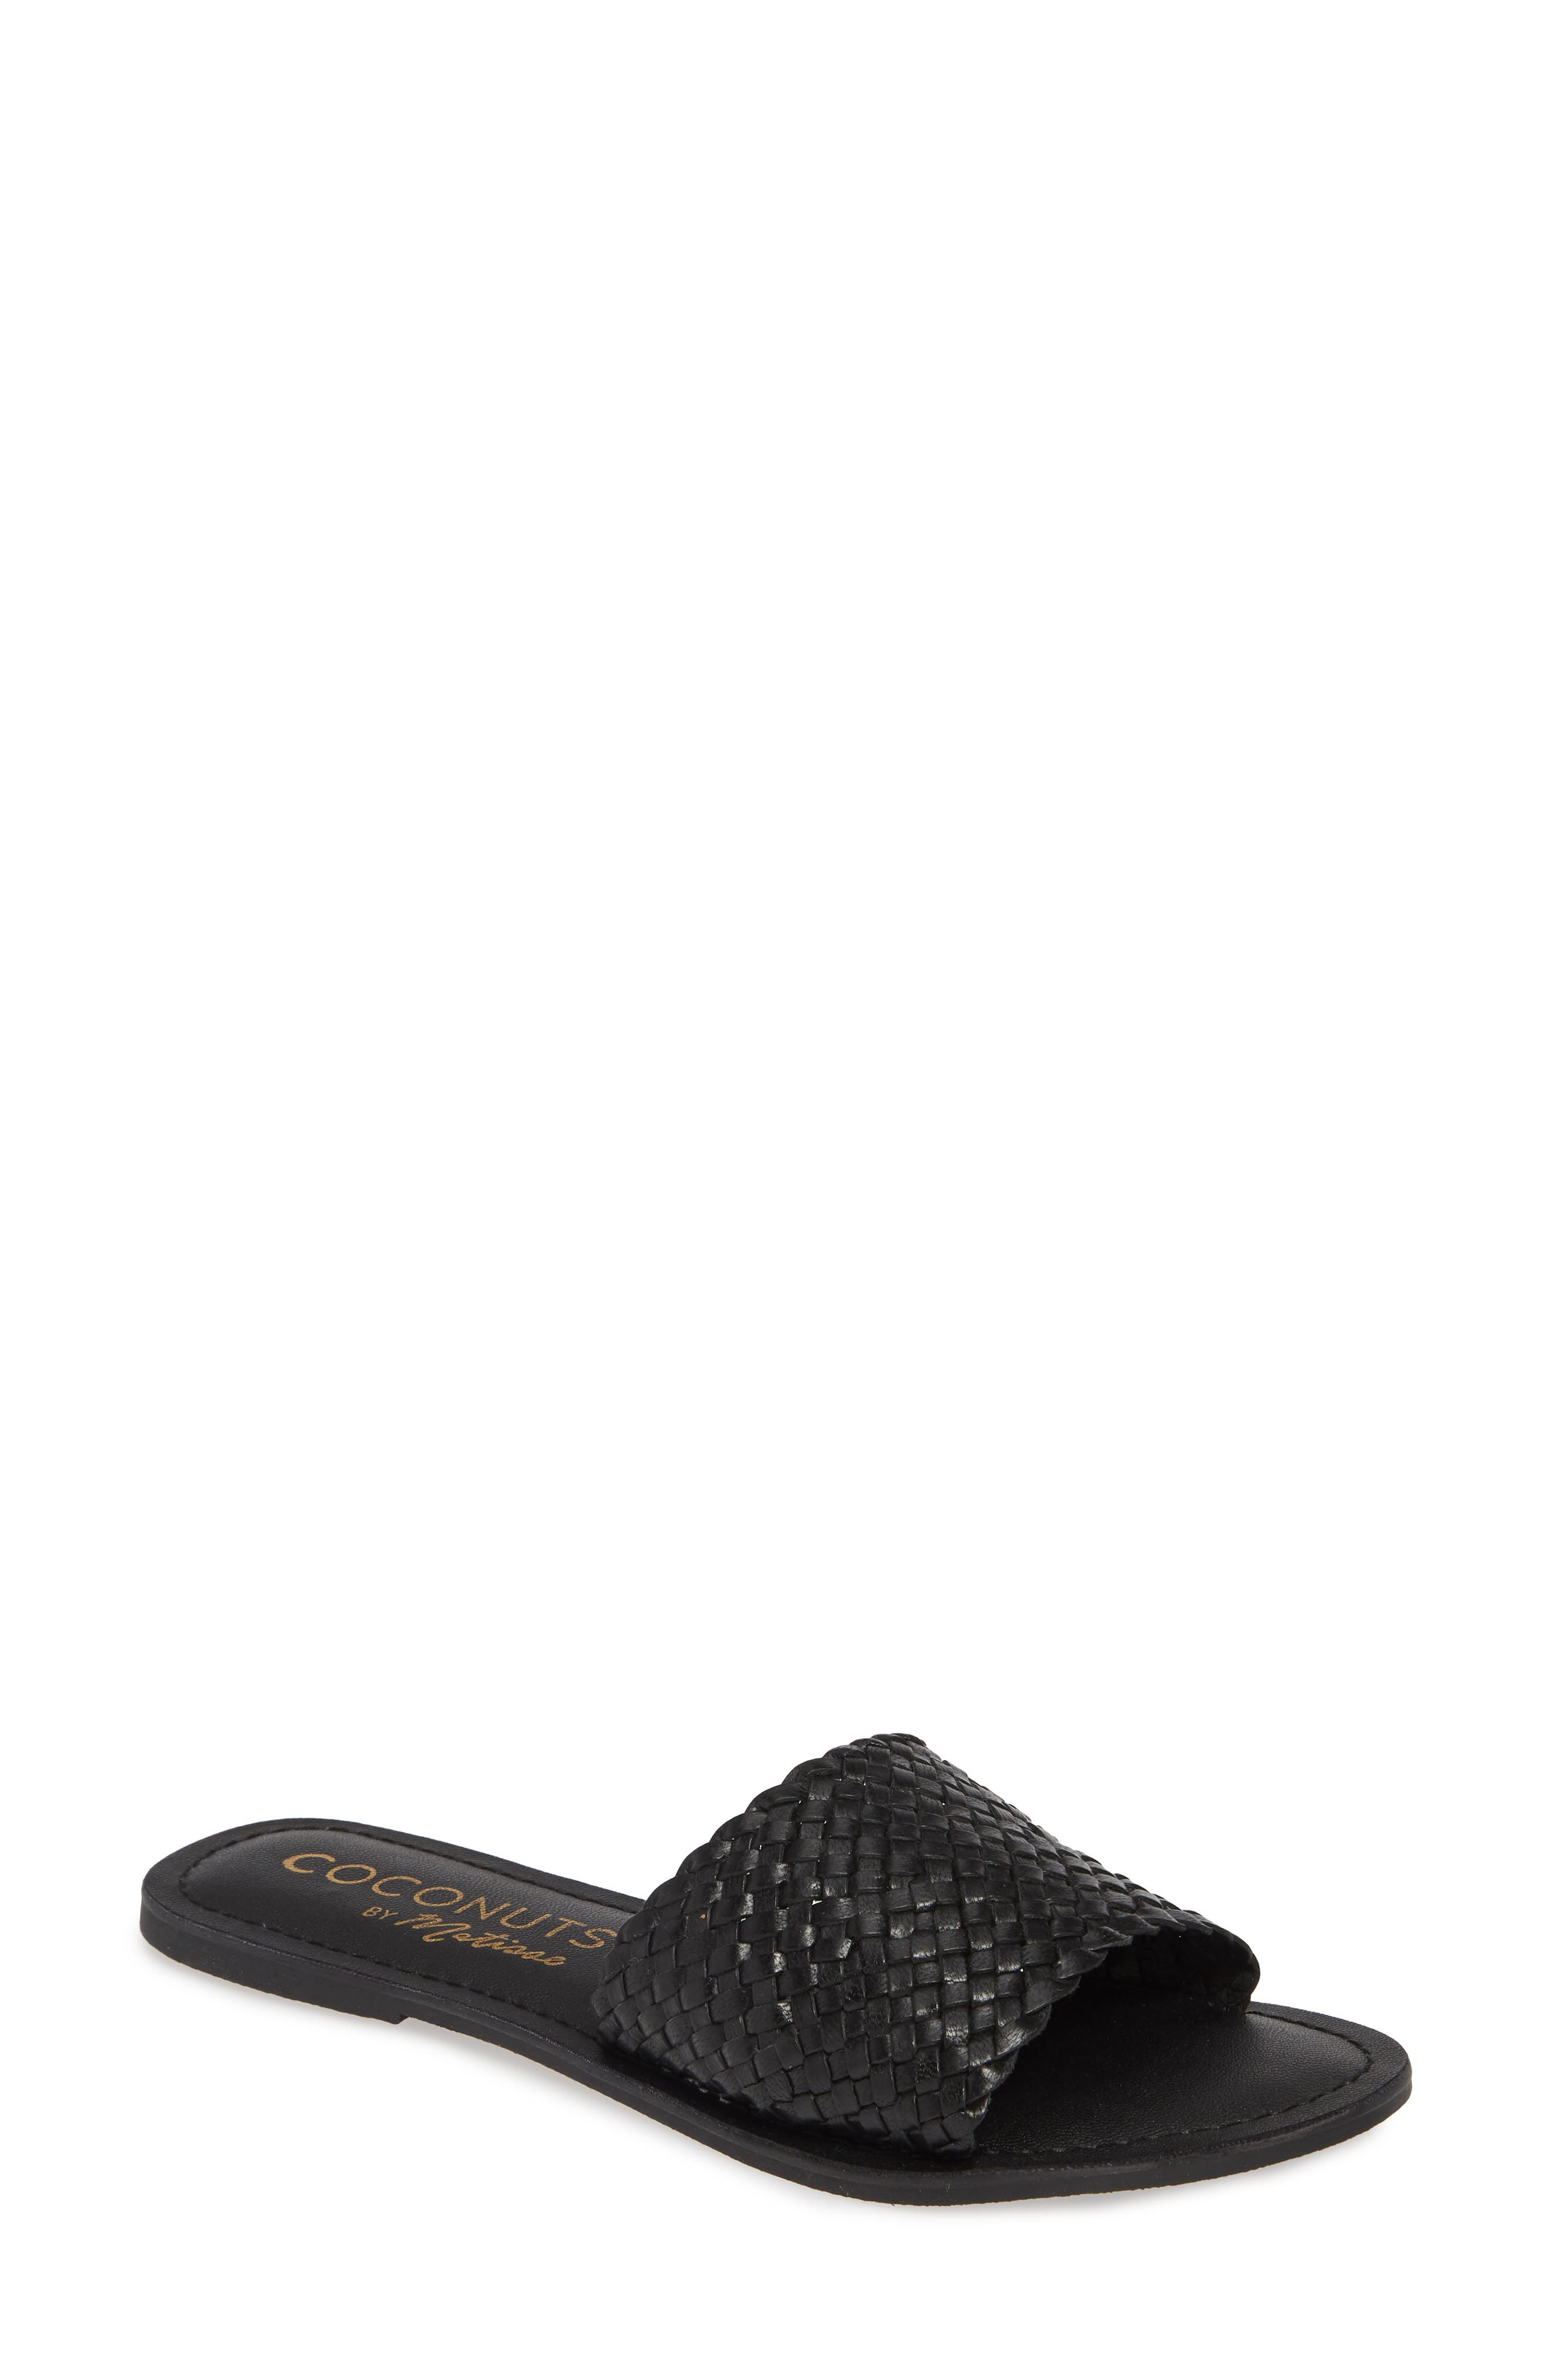 COCONUTS BY MATISSE Zuma Woven Slide Sandal, Main, color, BLACK LEATHER